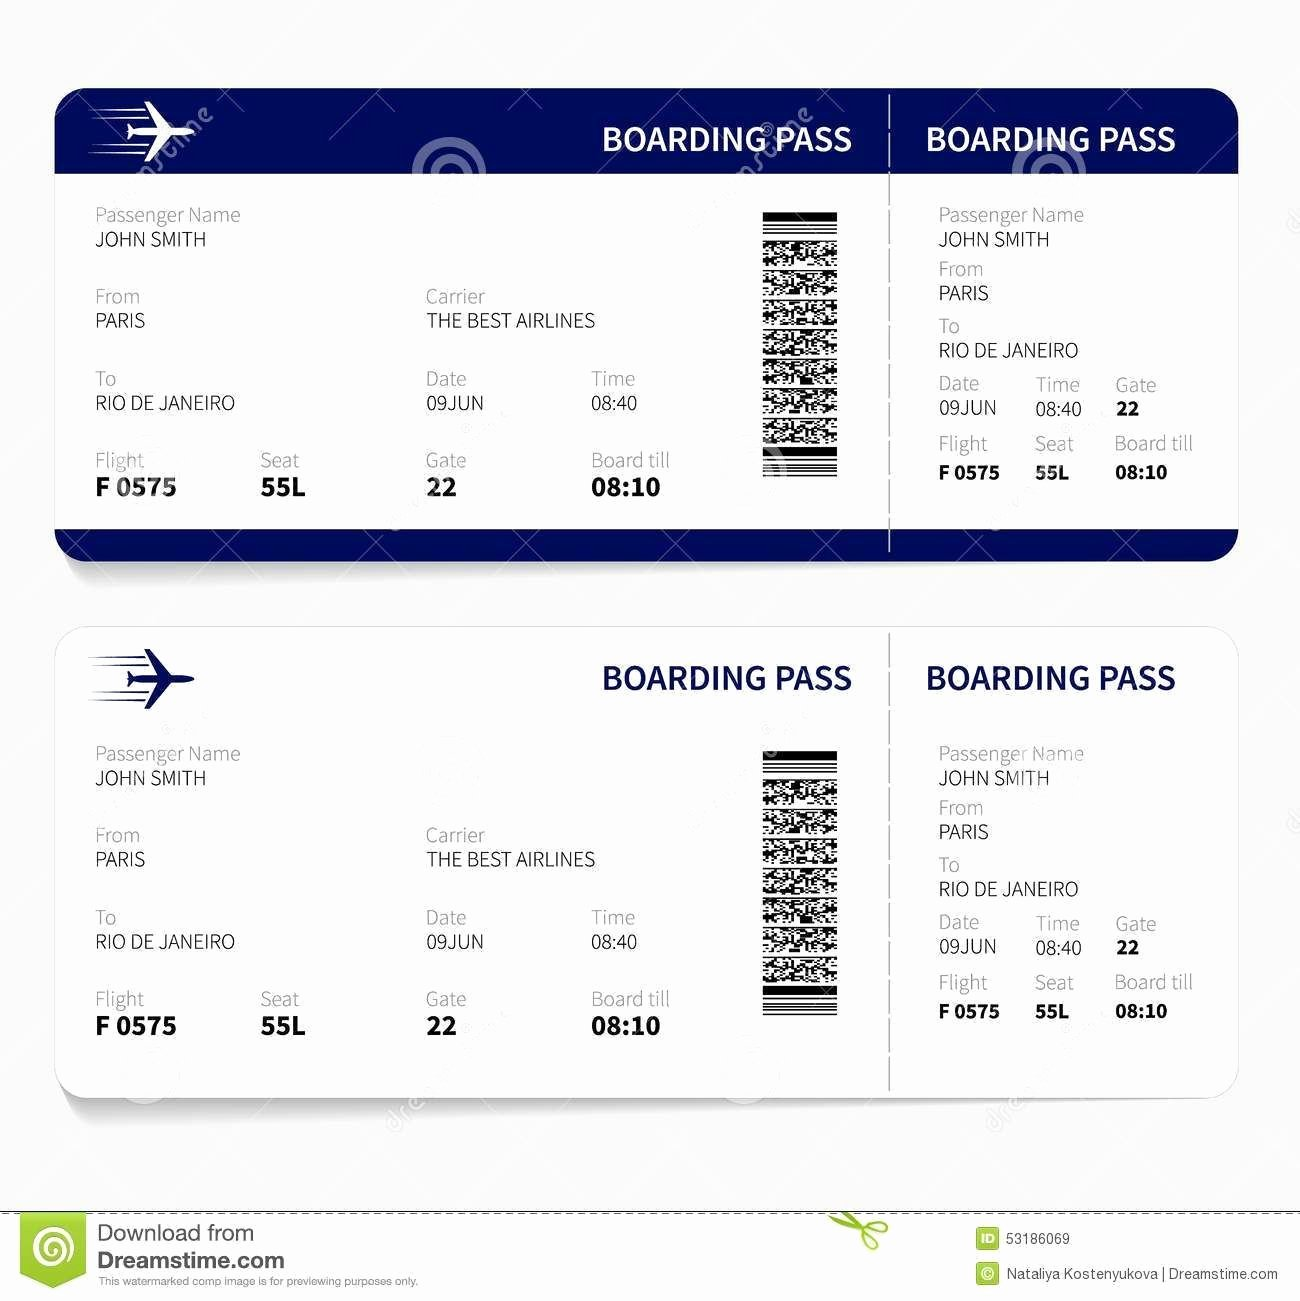 Boarding Pass Invitation Template Free Best Of Fake Boarding Pass Boarding Pass Template Free 16 Real Fake Boarding Pass Templates by Gtsak